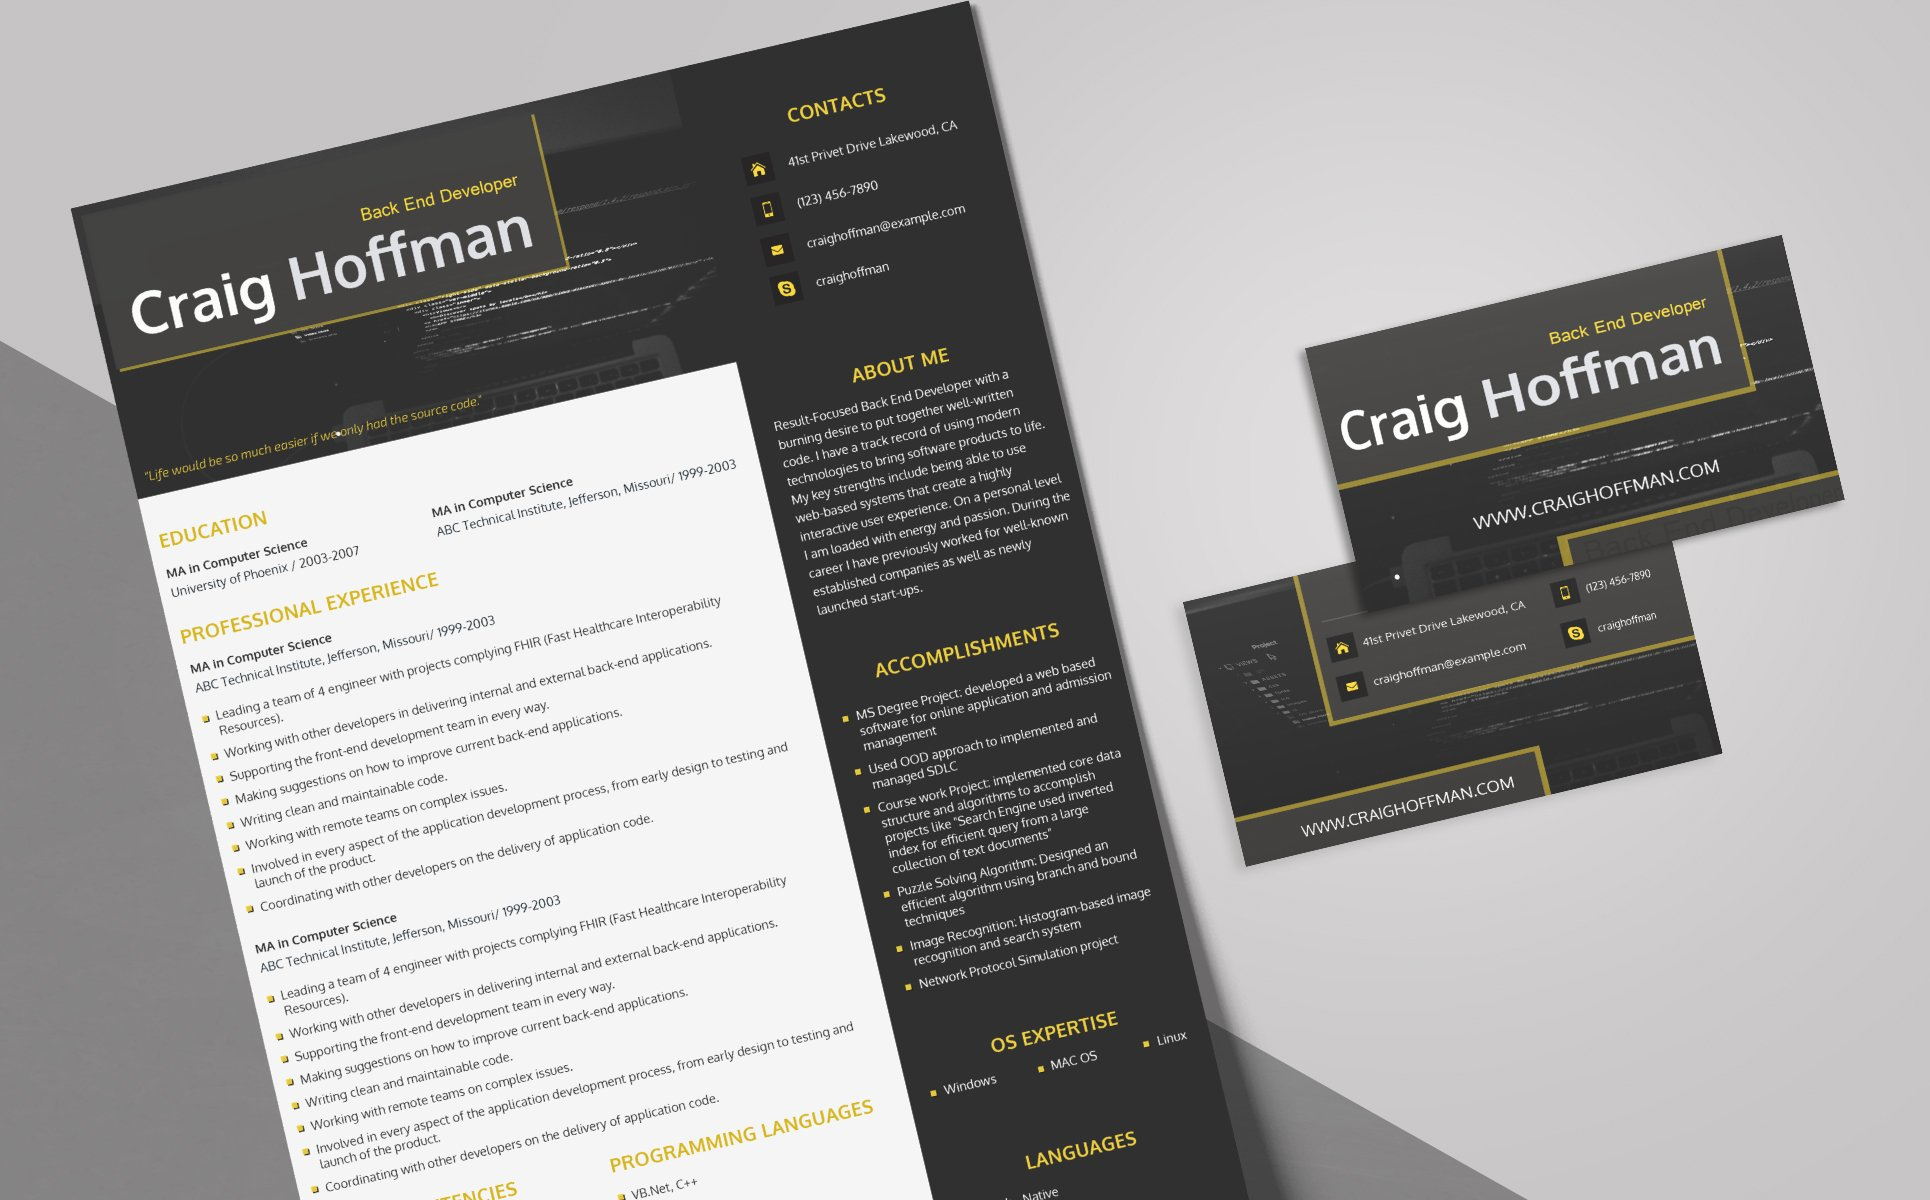 Craig Hoffman  Backend Developer Resume Template